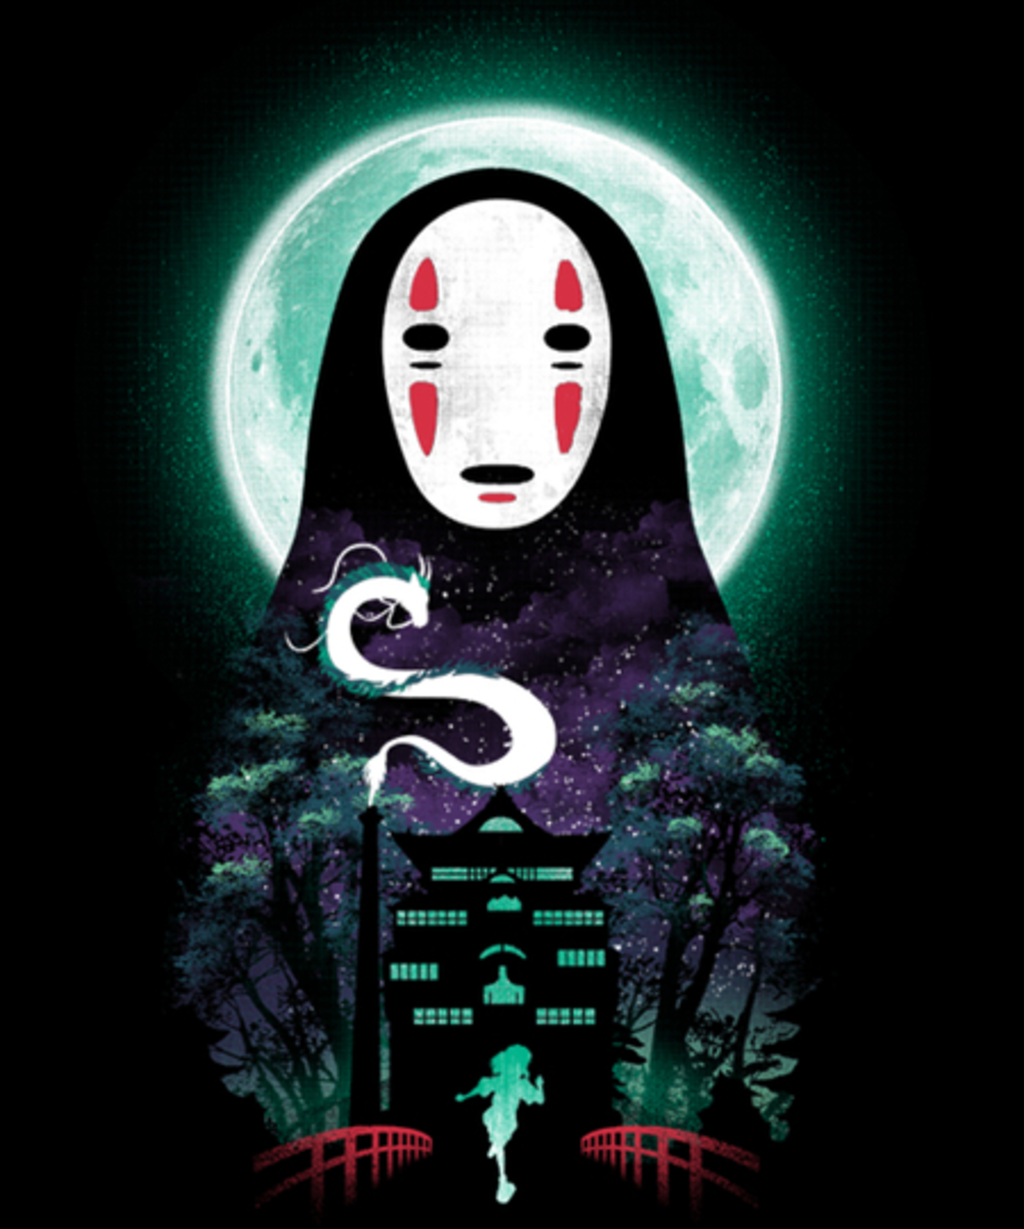 Qwertee: River Flows in You